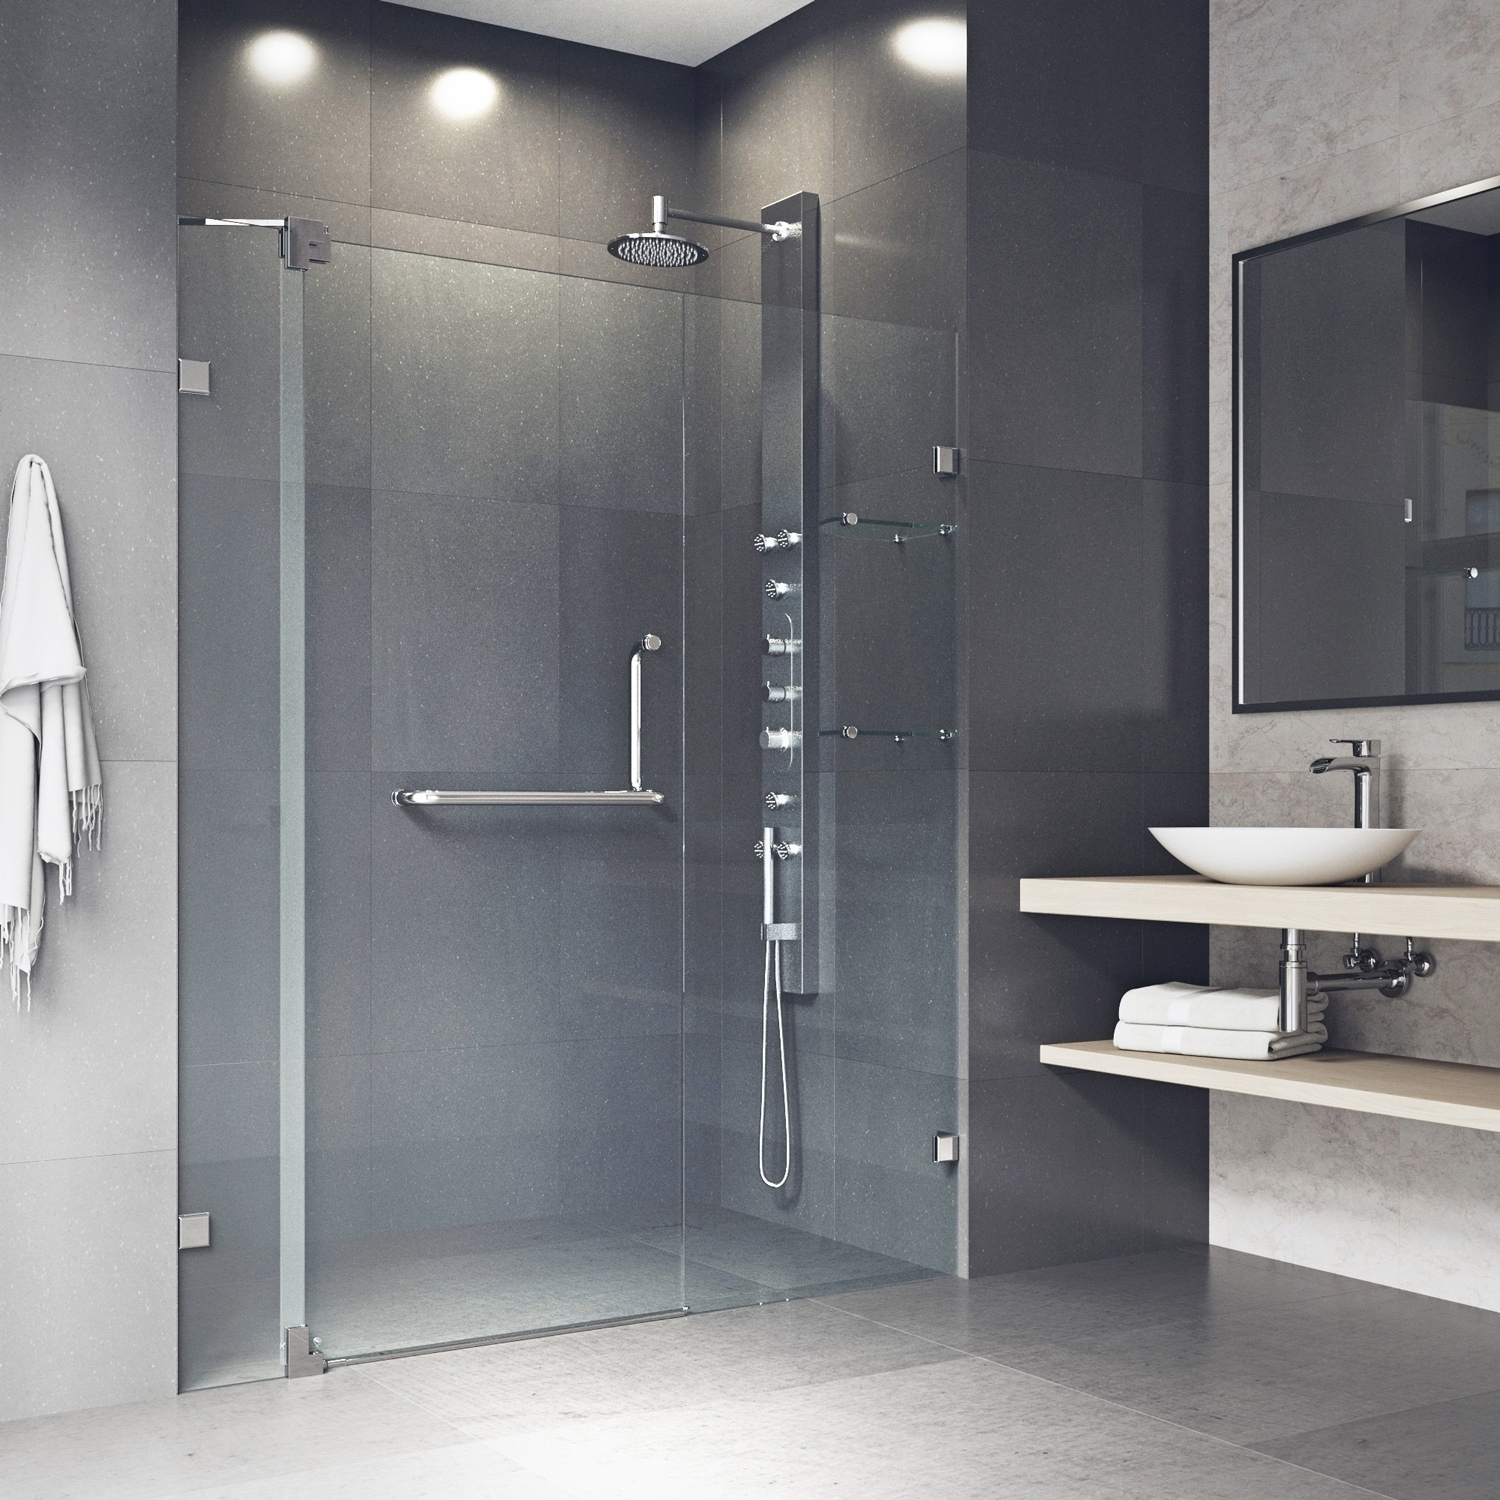 Shop Vigo Pirouette Adjustable Frameless Pivot Shower Door On Sale